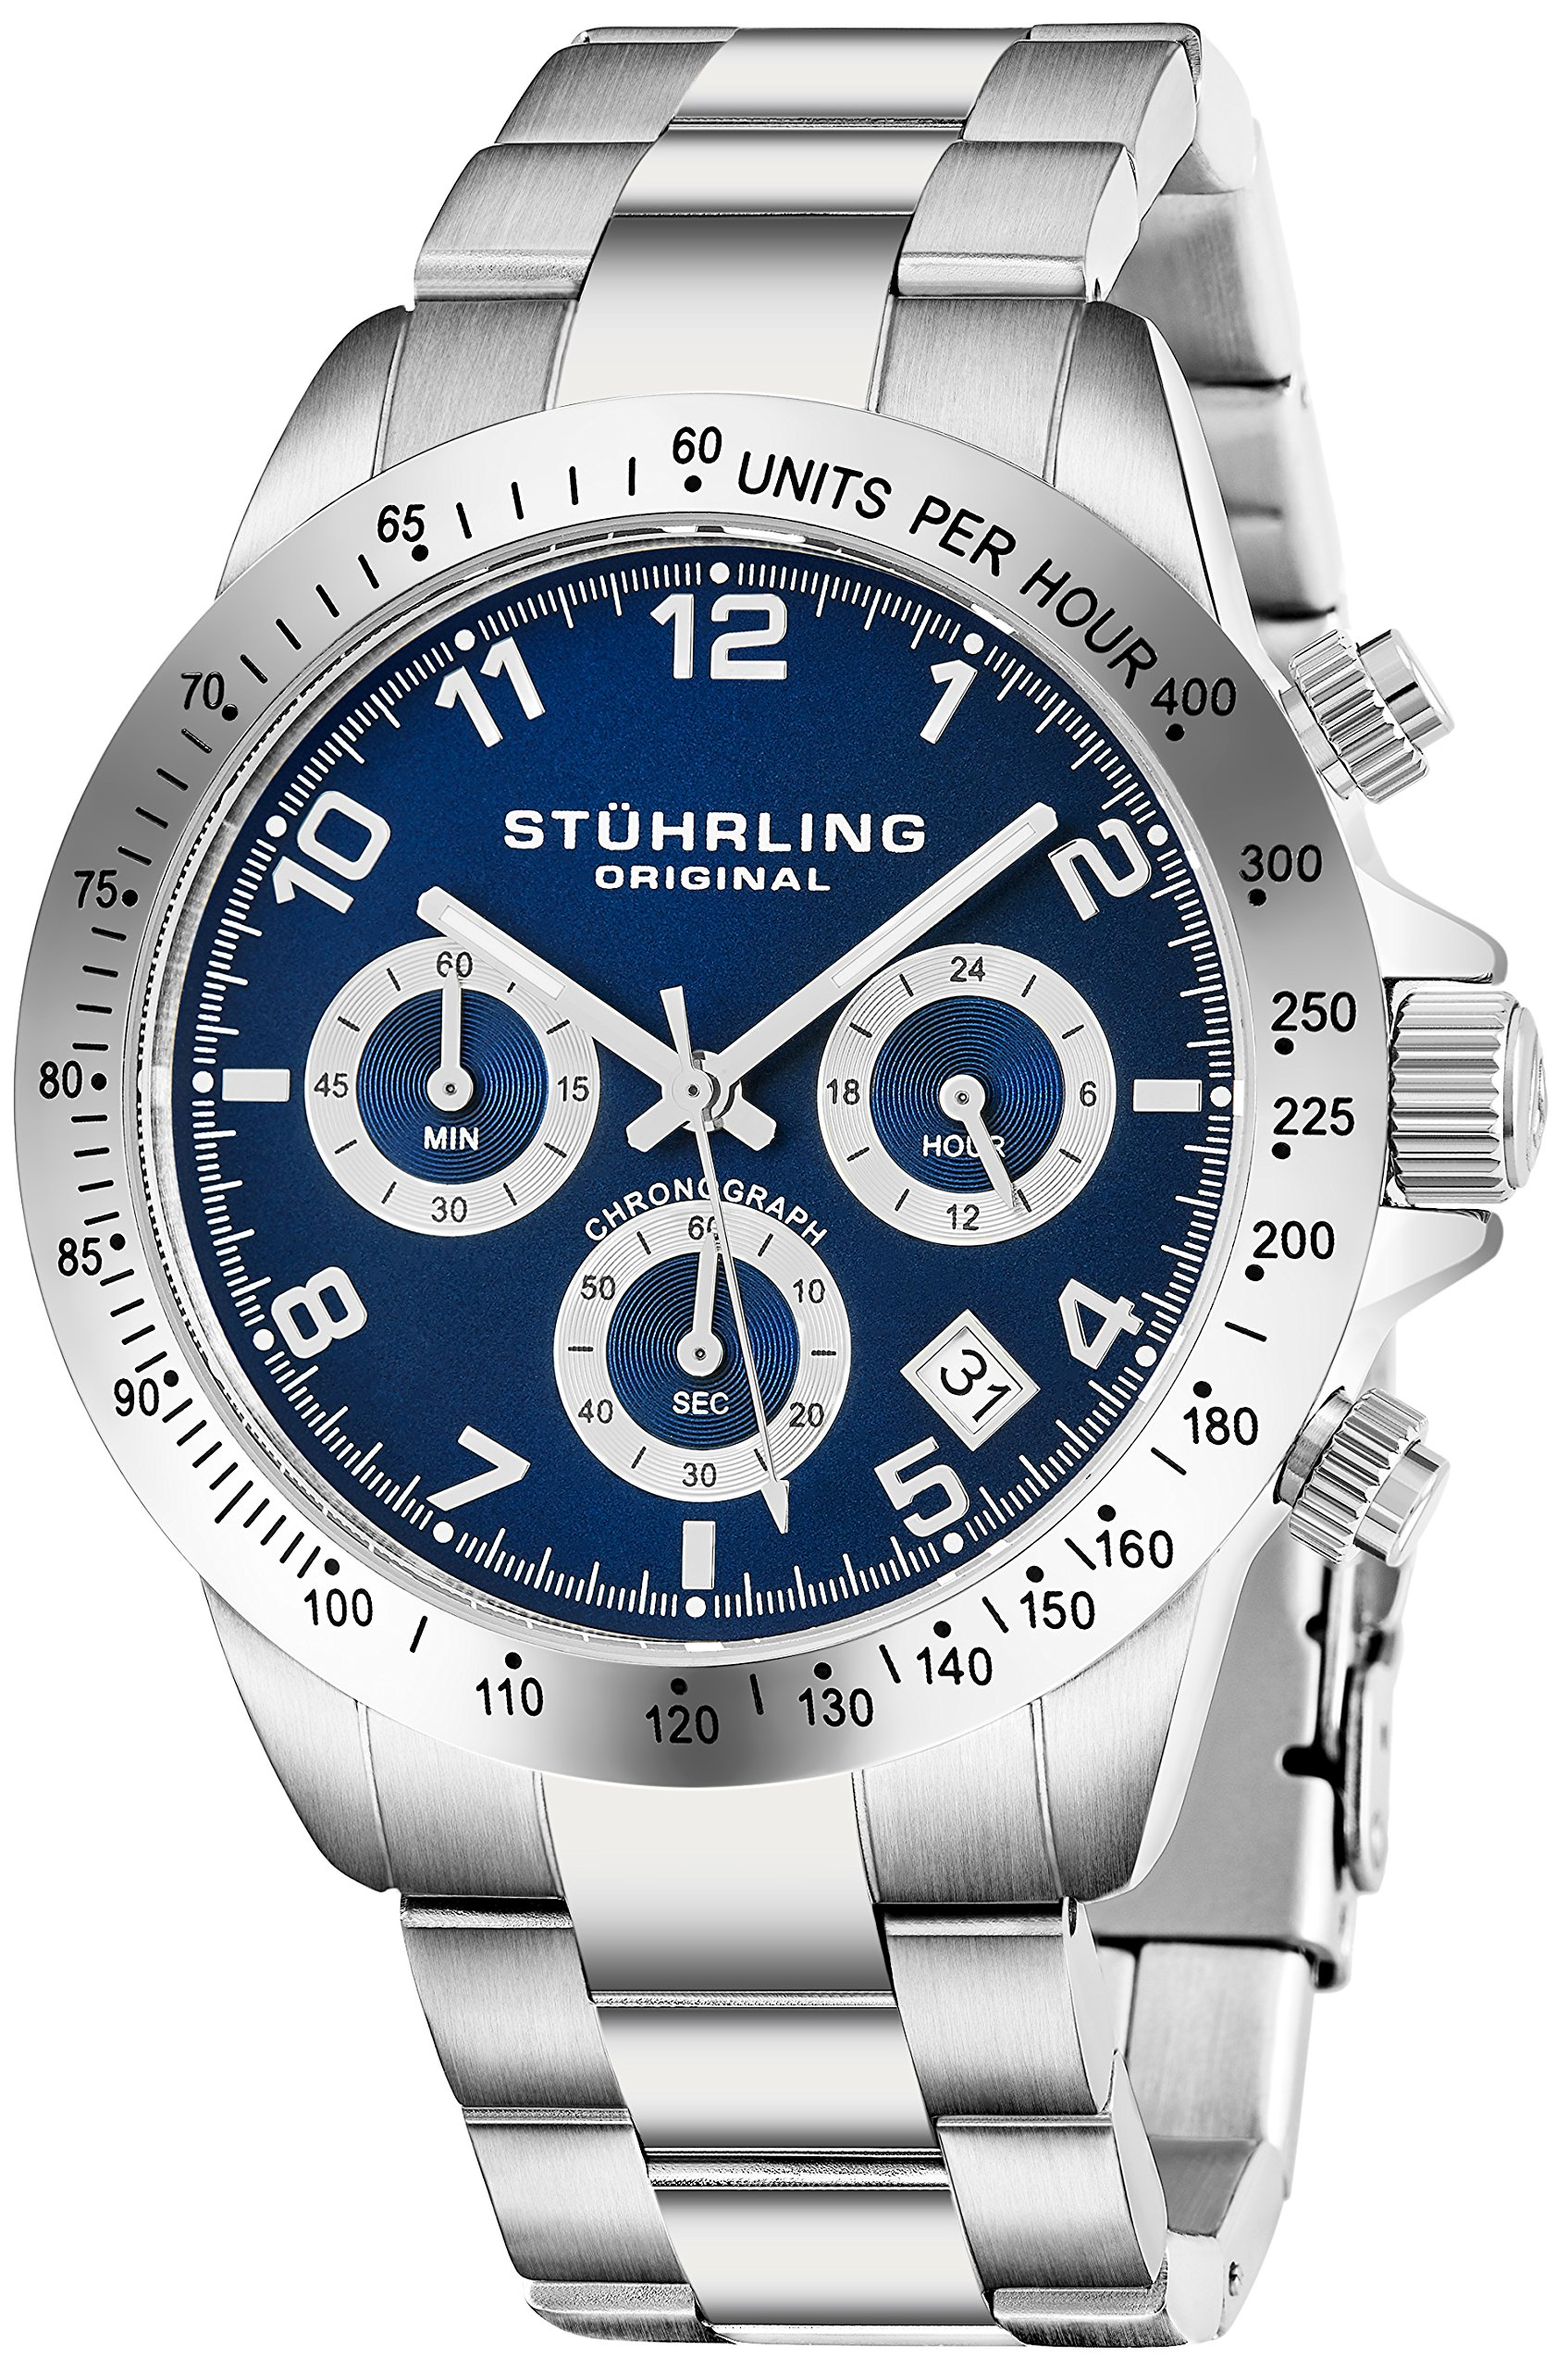 c8a6db12b56 Get Quotations · Quartz Chronograph Mens Watch by Stuhrling Original with  Black, Blue or Silver Dial. Solid